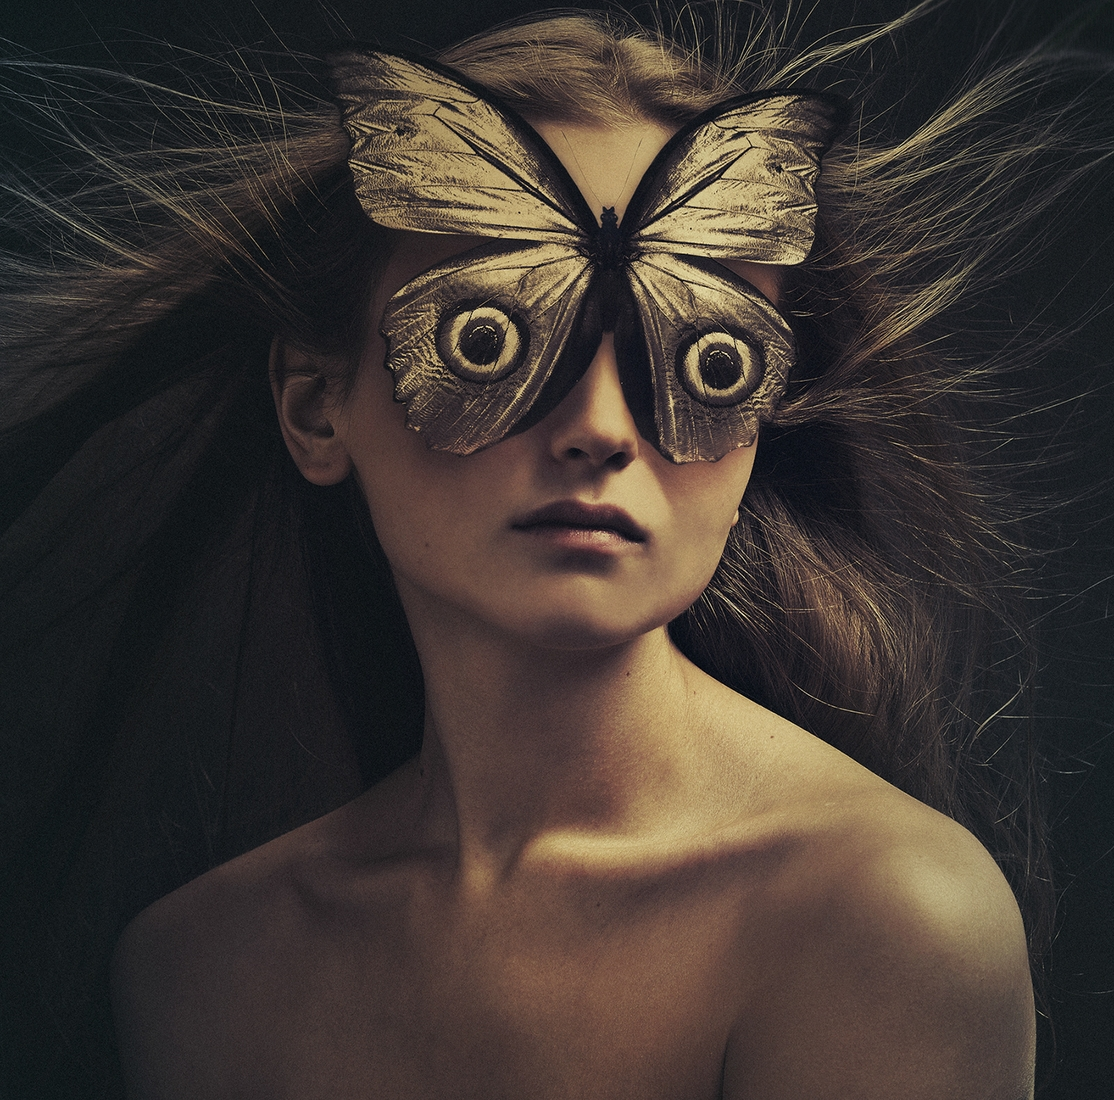 07-Butterfly-Flora-Borsi-Animeyed-Self-Portraits-Surreal-Photographs-www-designstack-co